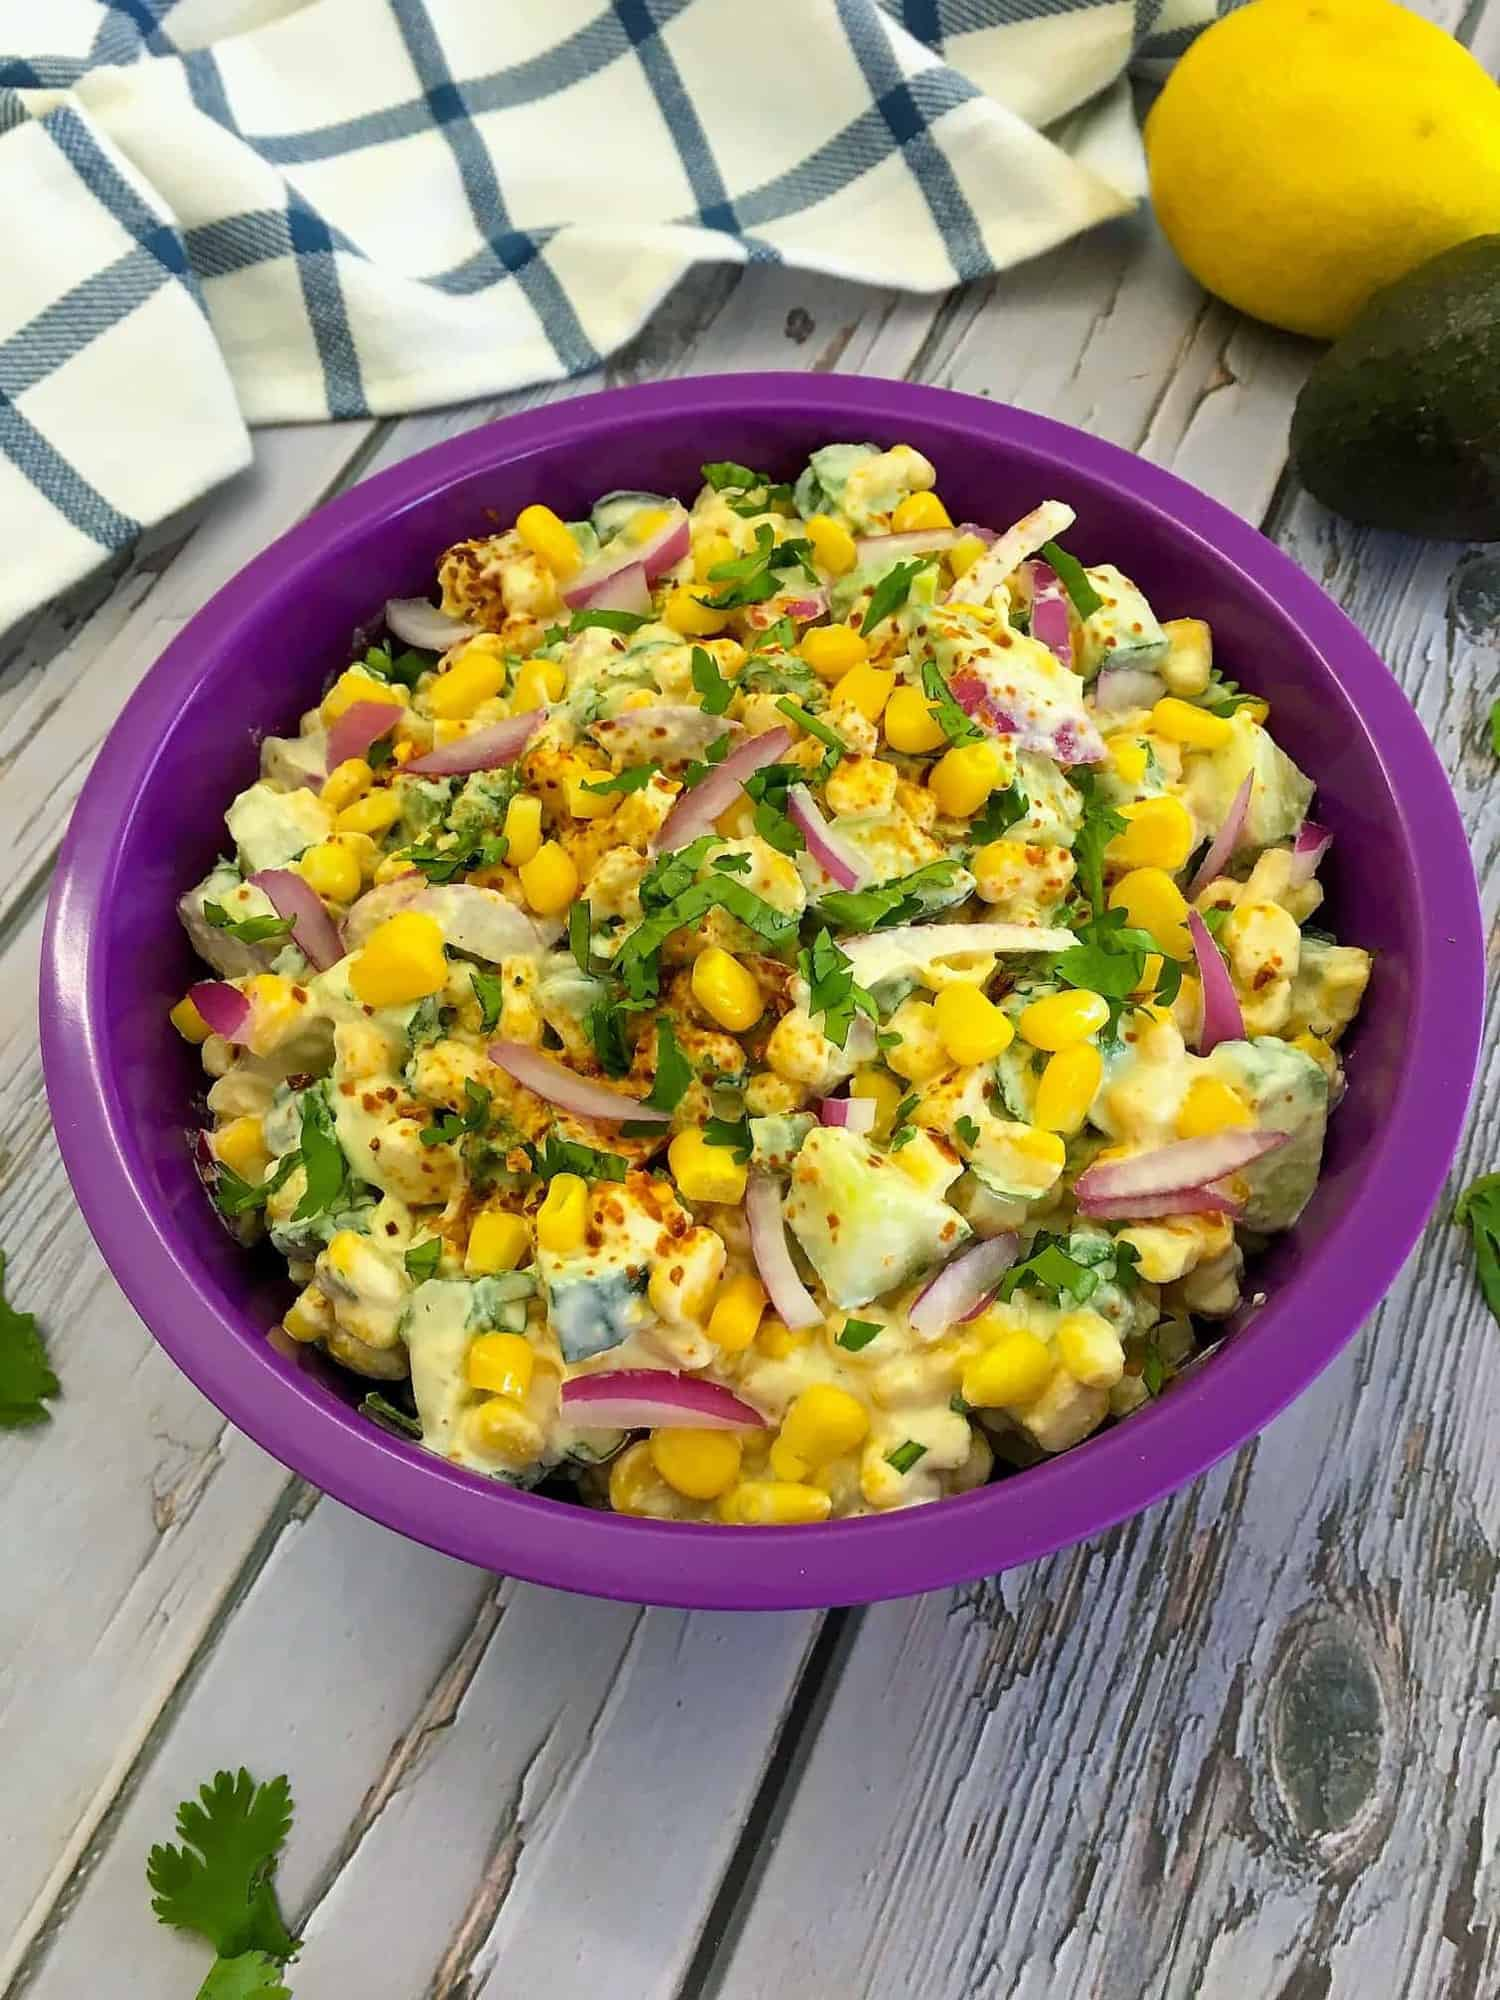 corn salad in purple bowl